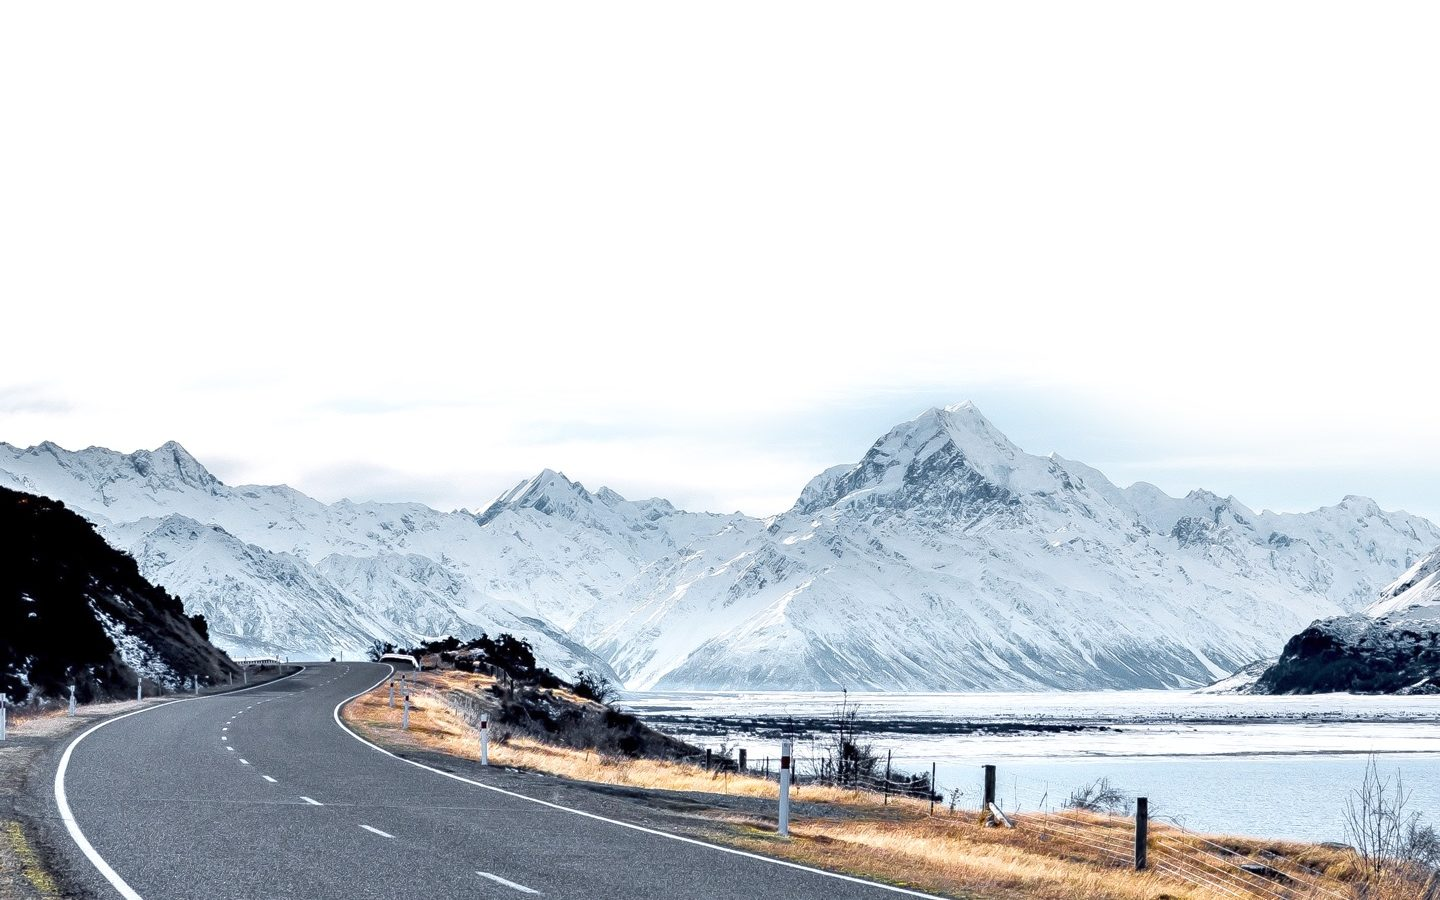 winding road with snowy mountains behind